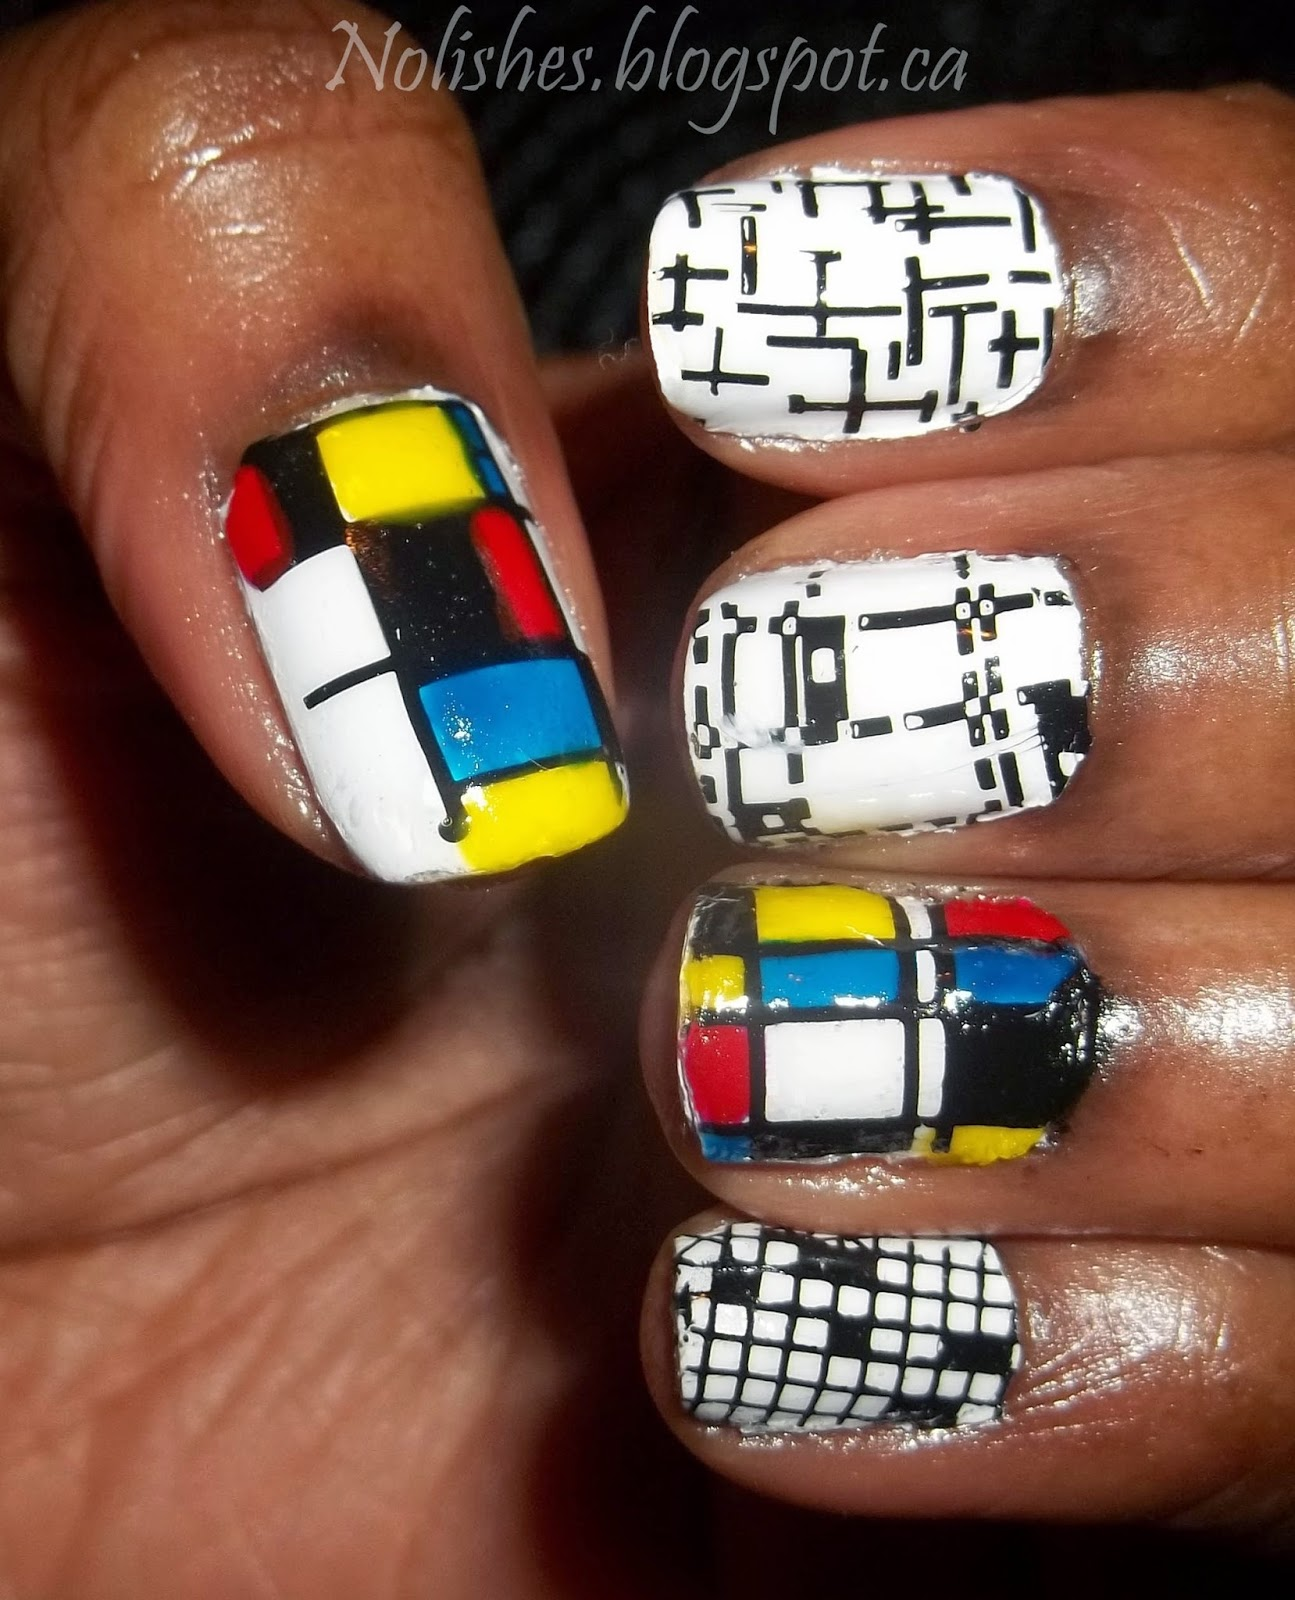 Nail stamping manicure inspired by the artwork or Piet Mondrian. Designed using Moyou London Artist collection plate 16, and white, black, red, blue, and yellow polishes from China Glaze, Essie, Konad, and Nfu Oh.